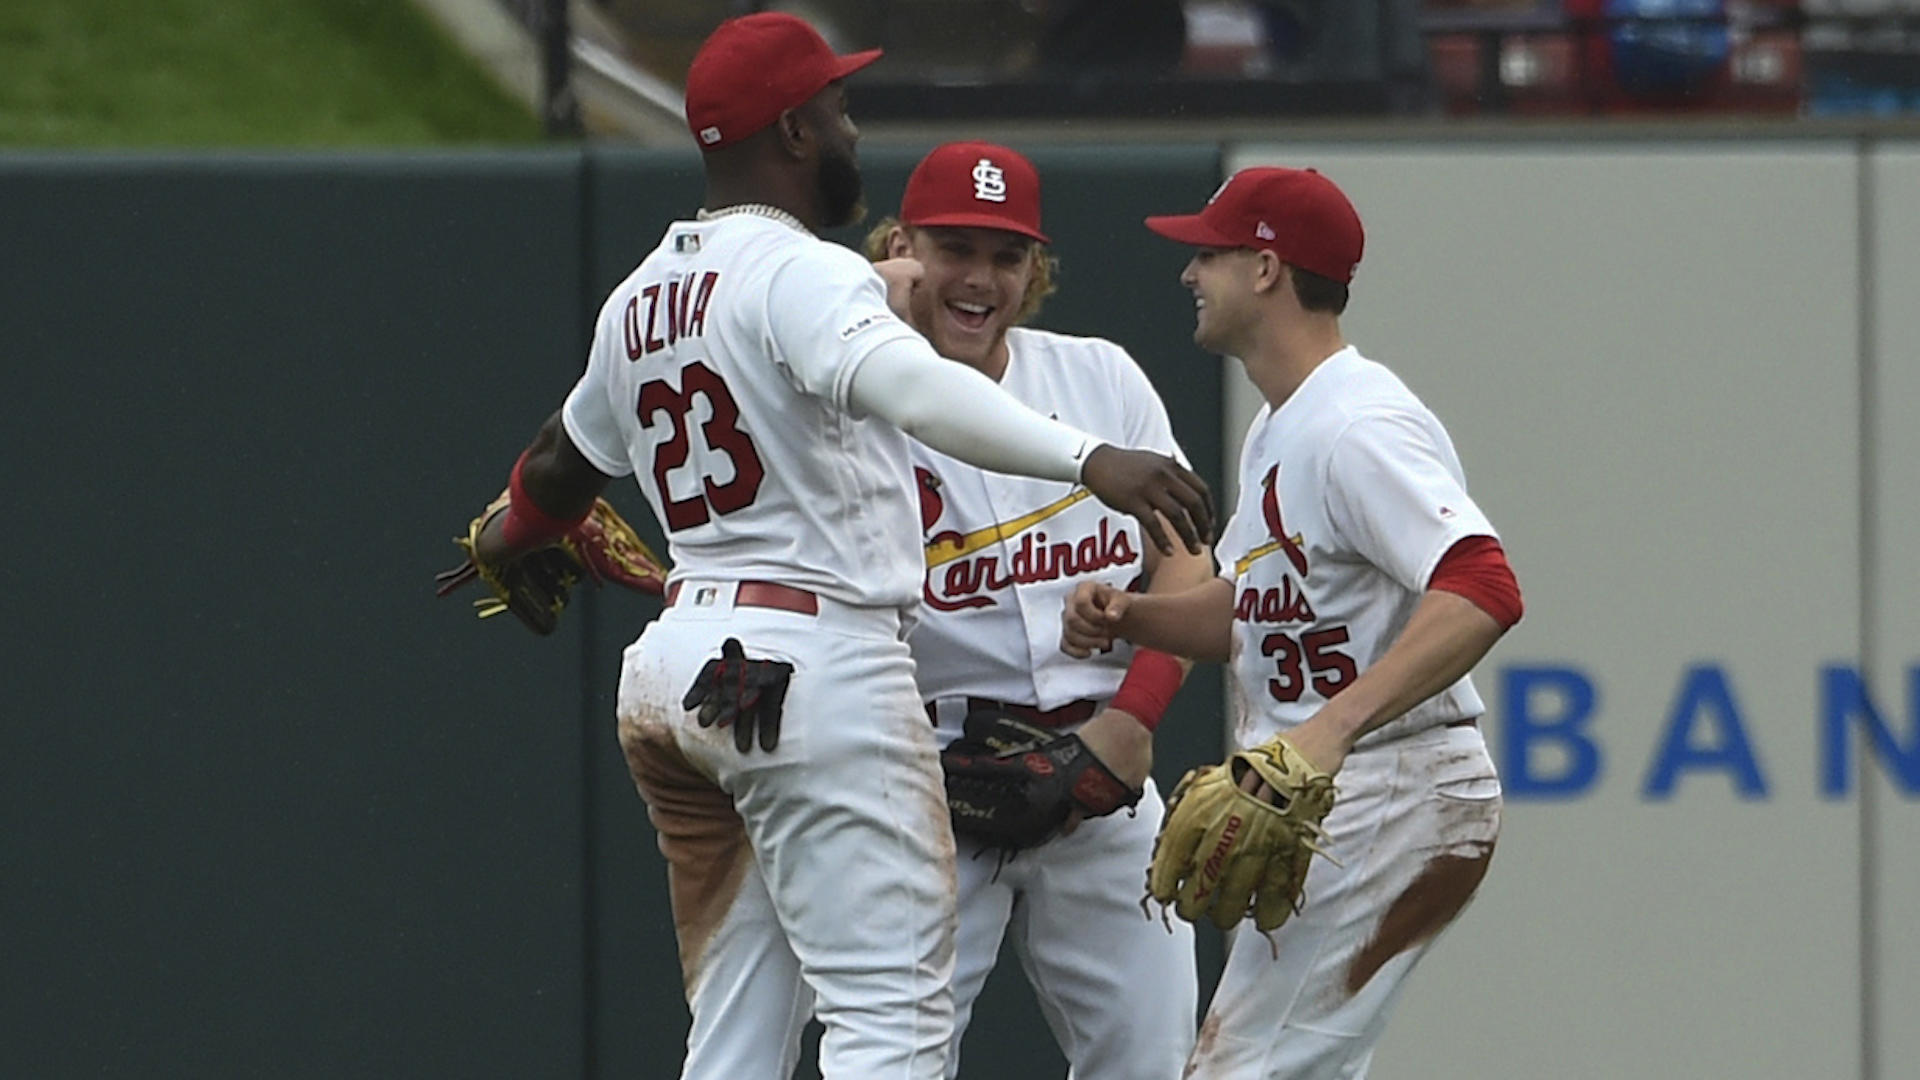 The Cardinals haven't been bothered by one of baseball's toughest schedules to start 2019